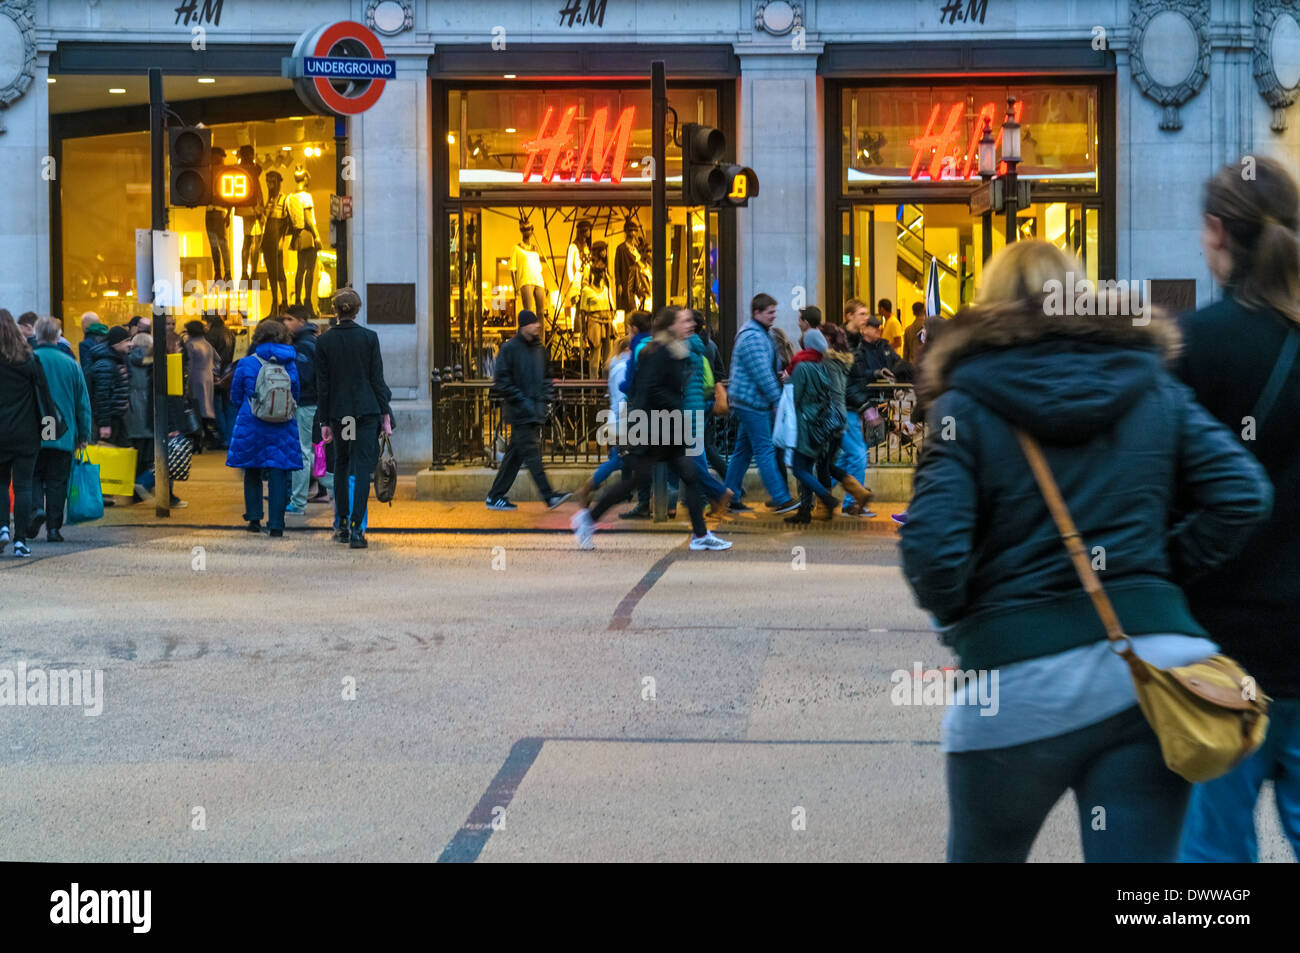 H&M Shop on Oxford Street - Stock Image